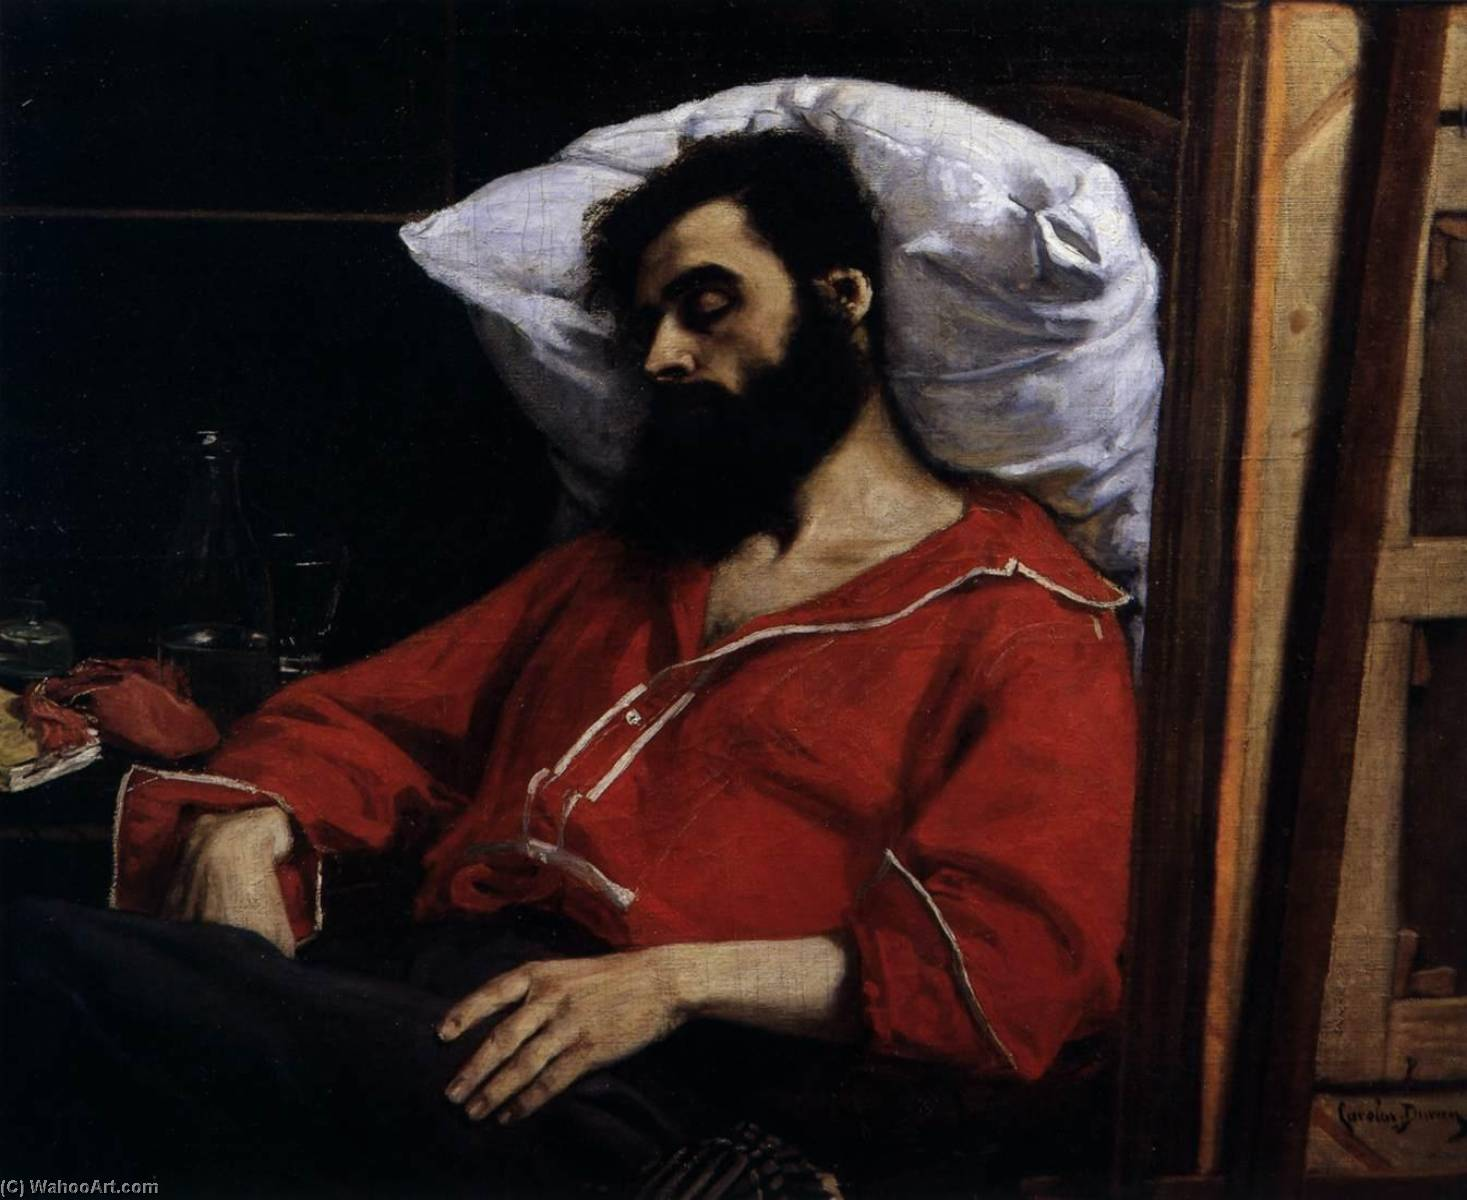 The Convalescent or The Casualty, 1860 by Carolus-Duran (Charles-Auguste-Emile Durand) | Art Reproductions Carolus-Duran (Charles-Auguste-Emile Durand) | WahooArt.com